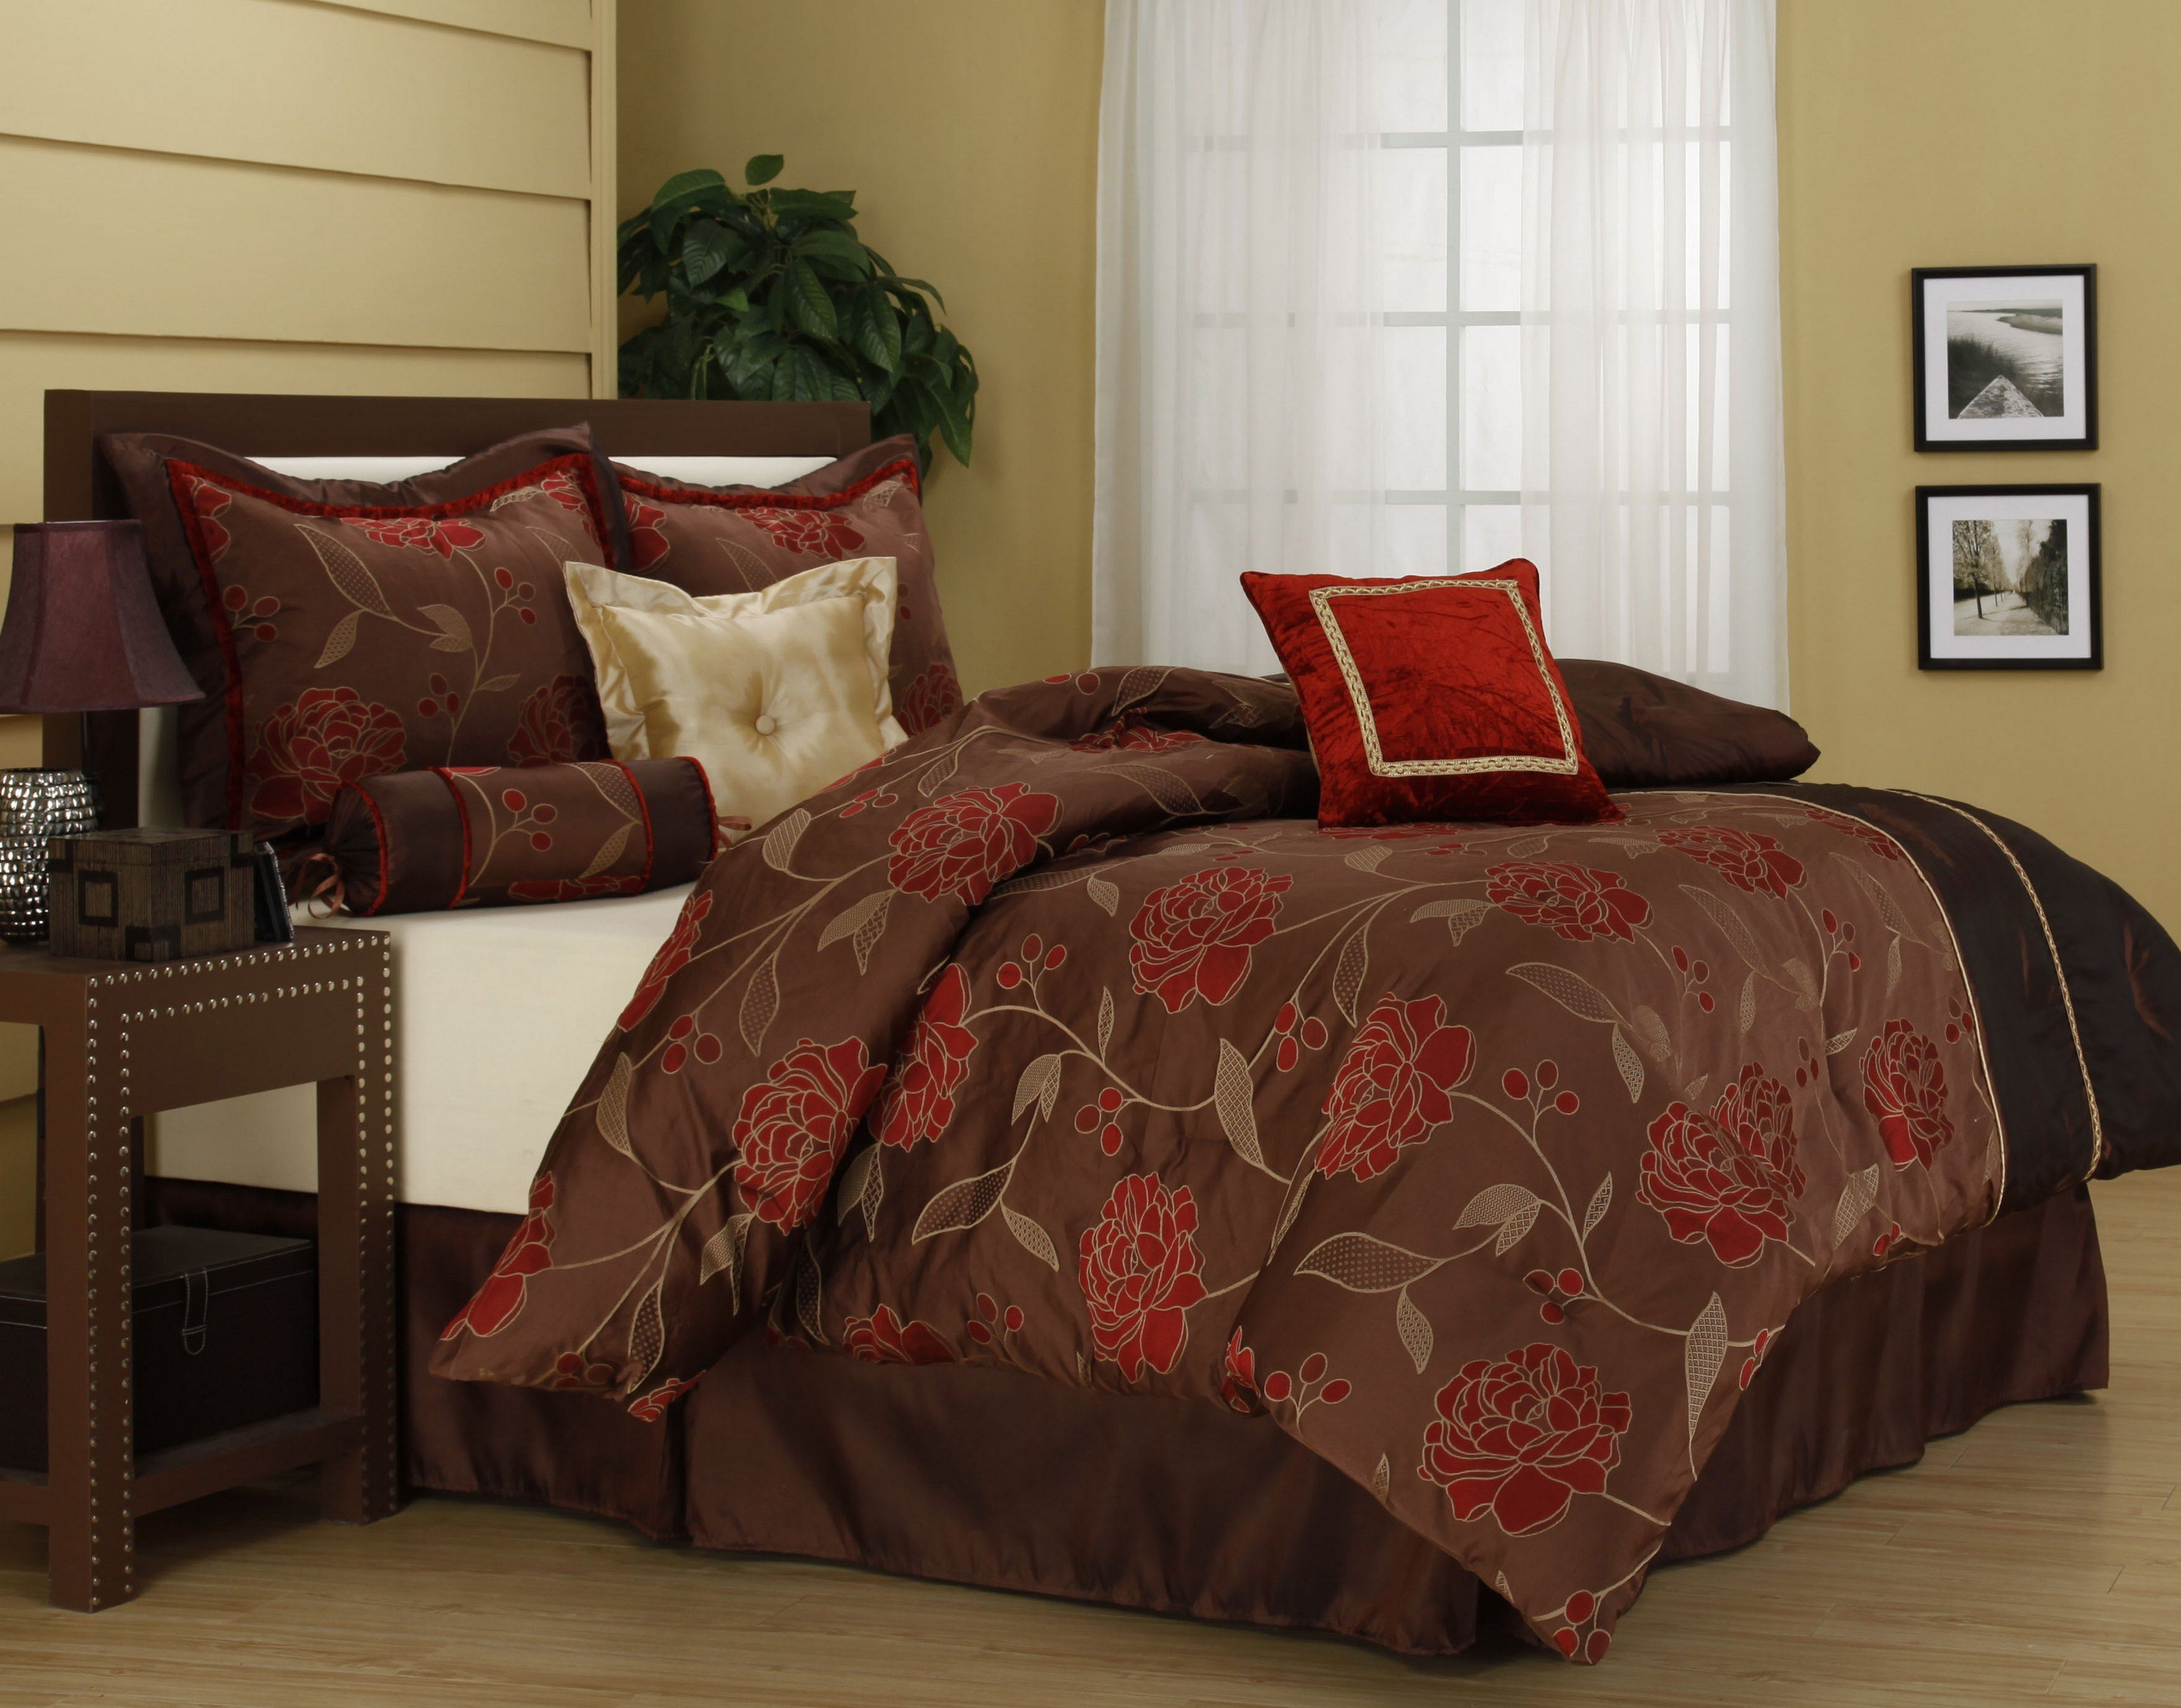 bed bedding queen brown white bedspreads bedroom blue comforter and king sets comforters black set full navy grey red